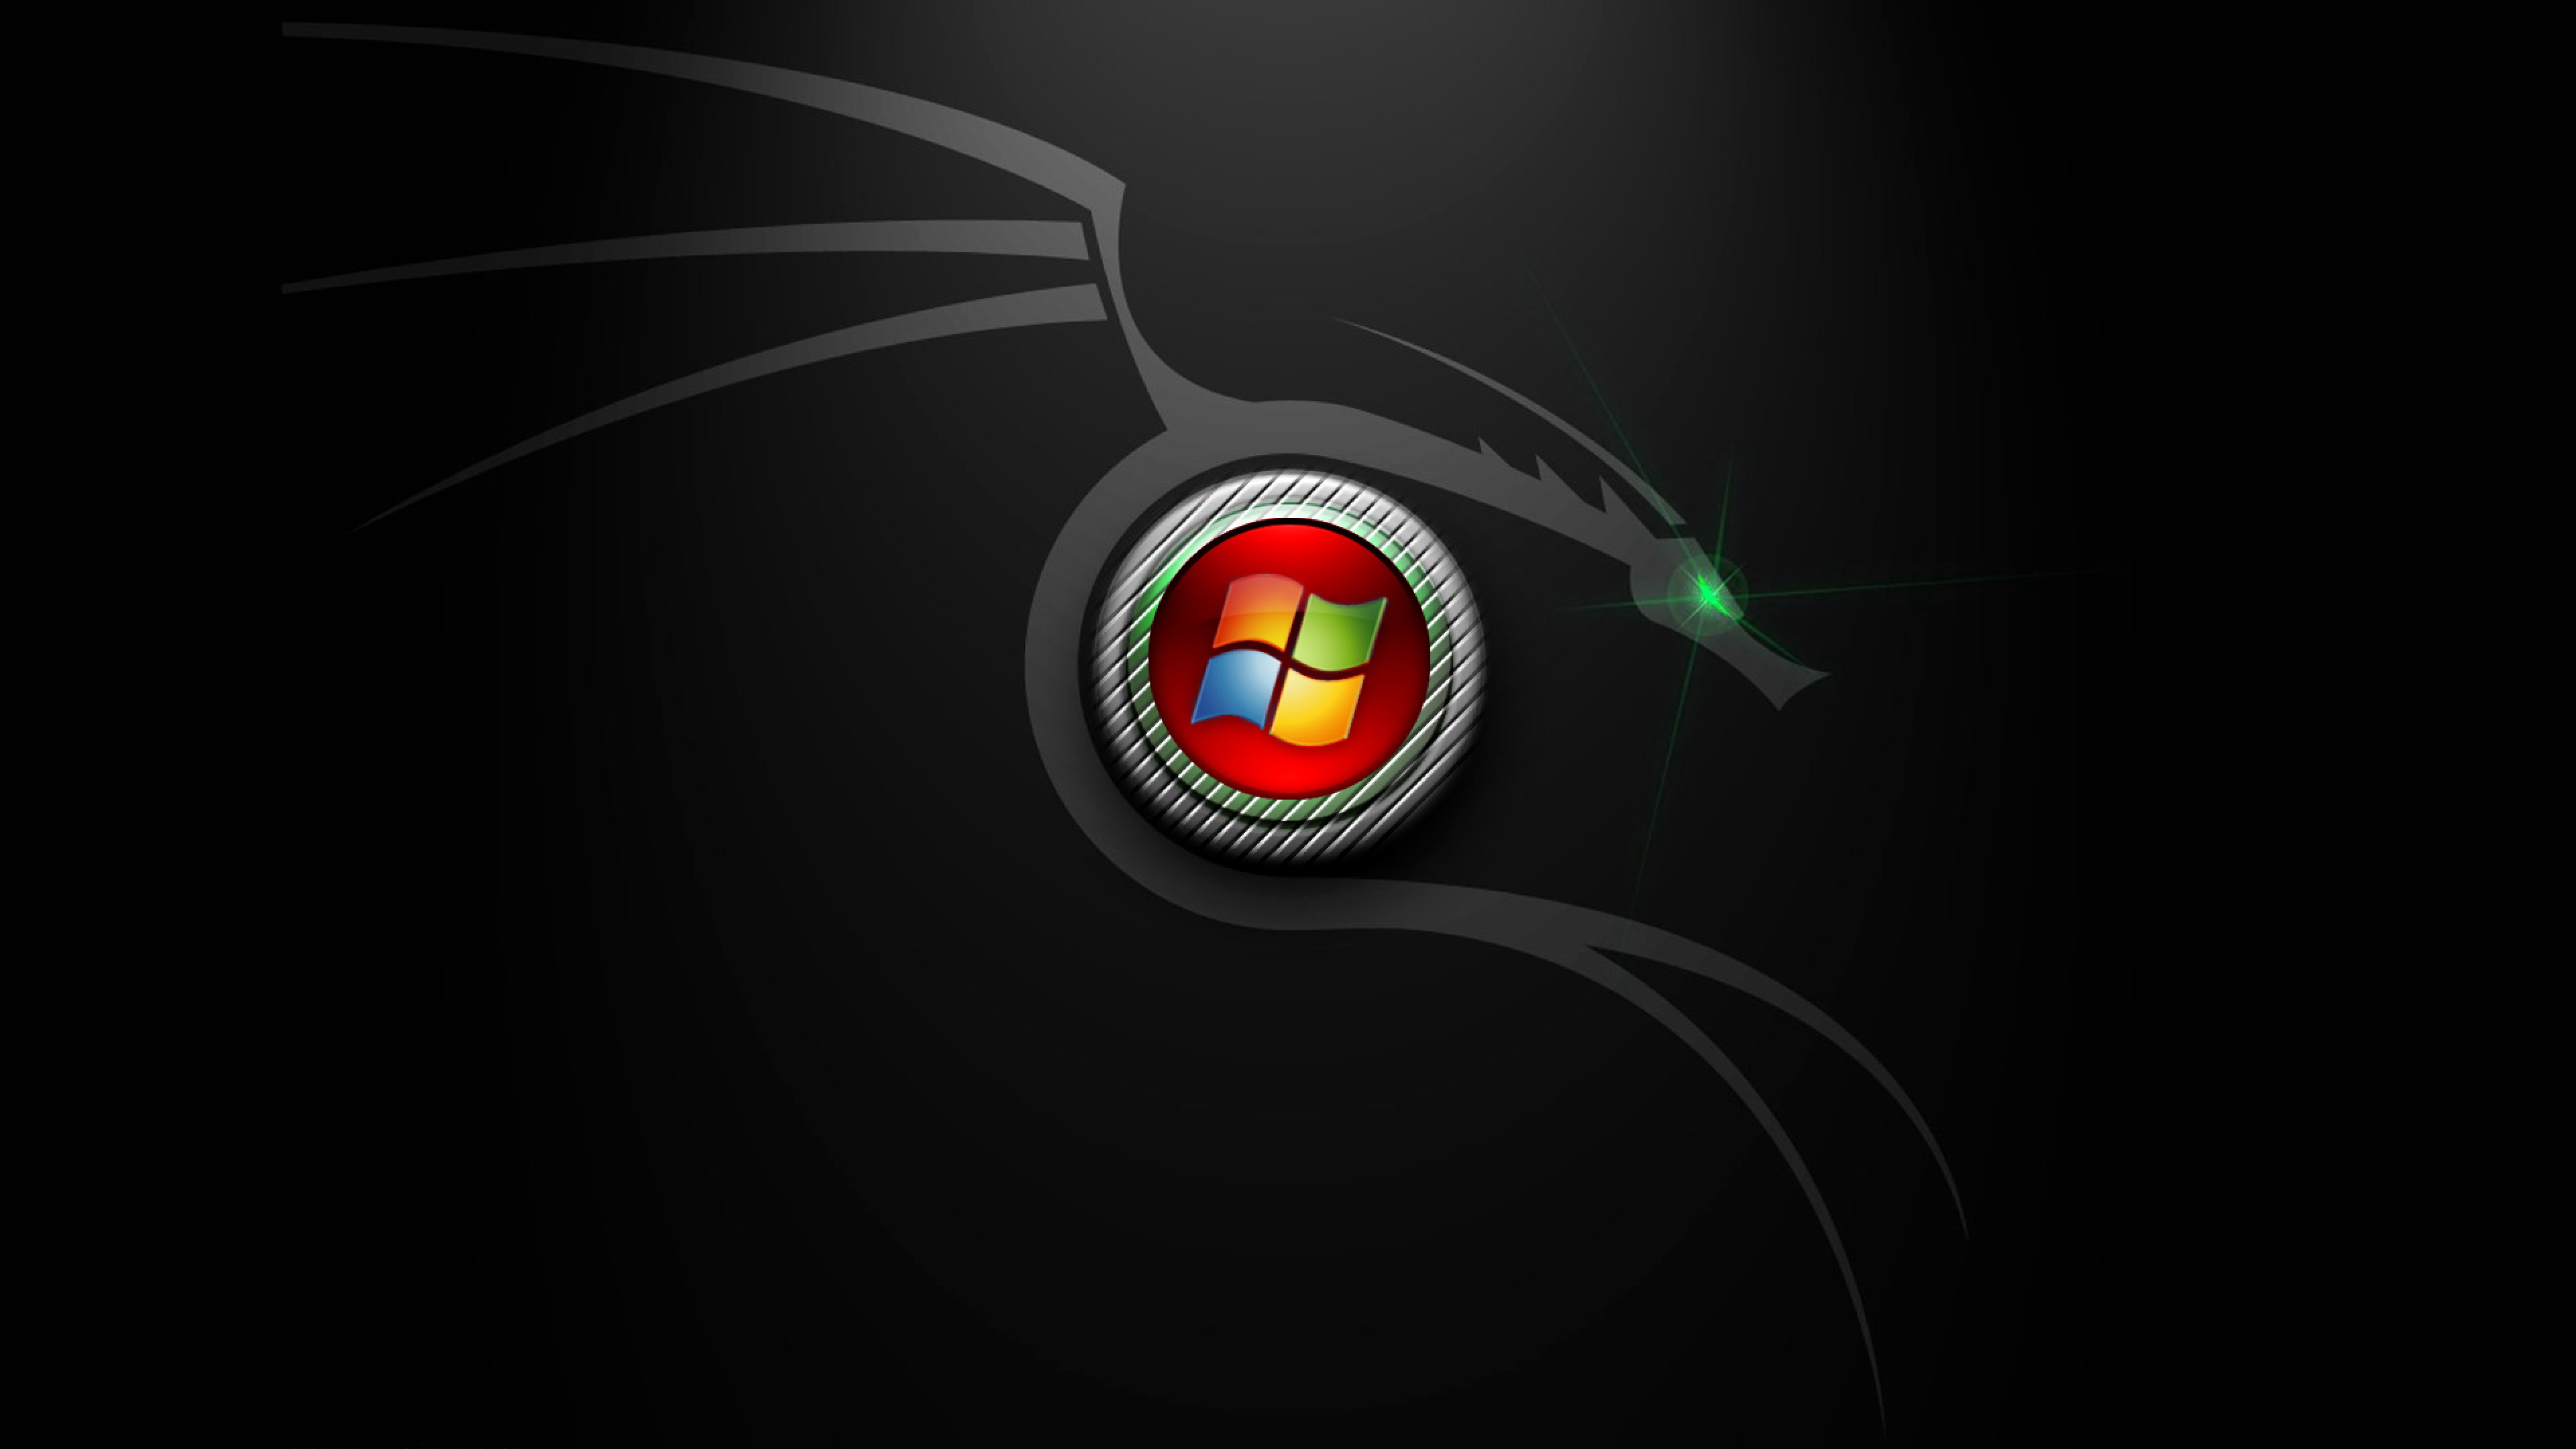 Windows 7 Black Edition Hd Wallpaper 4k Ultra Hd Hd